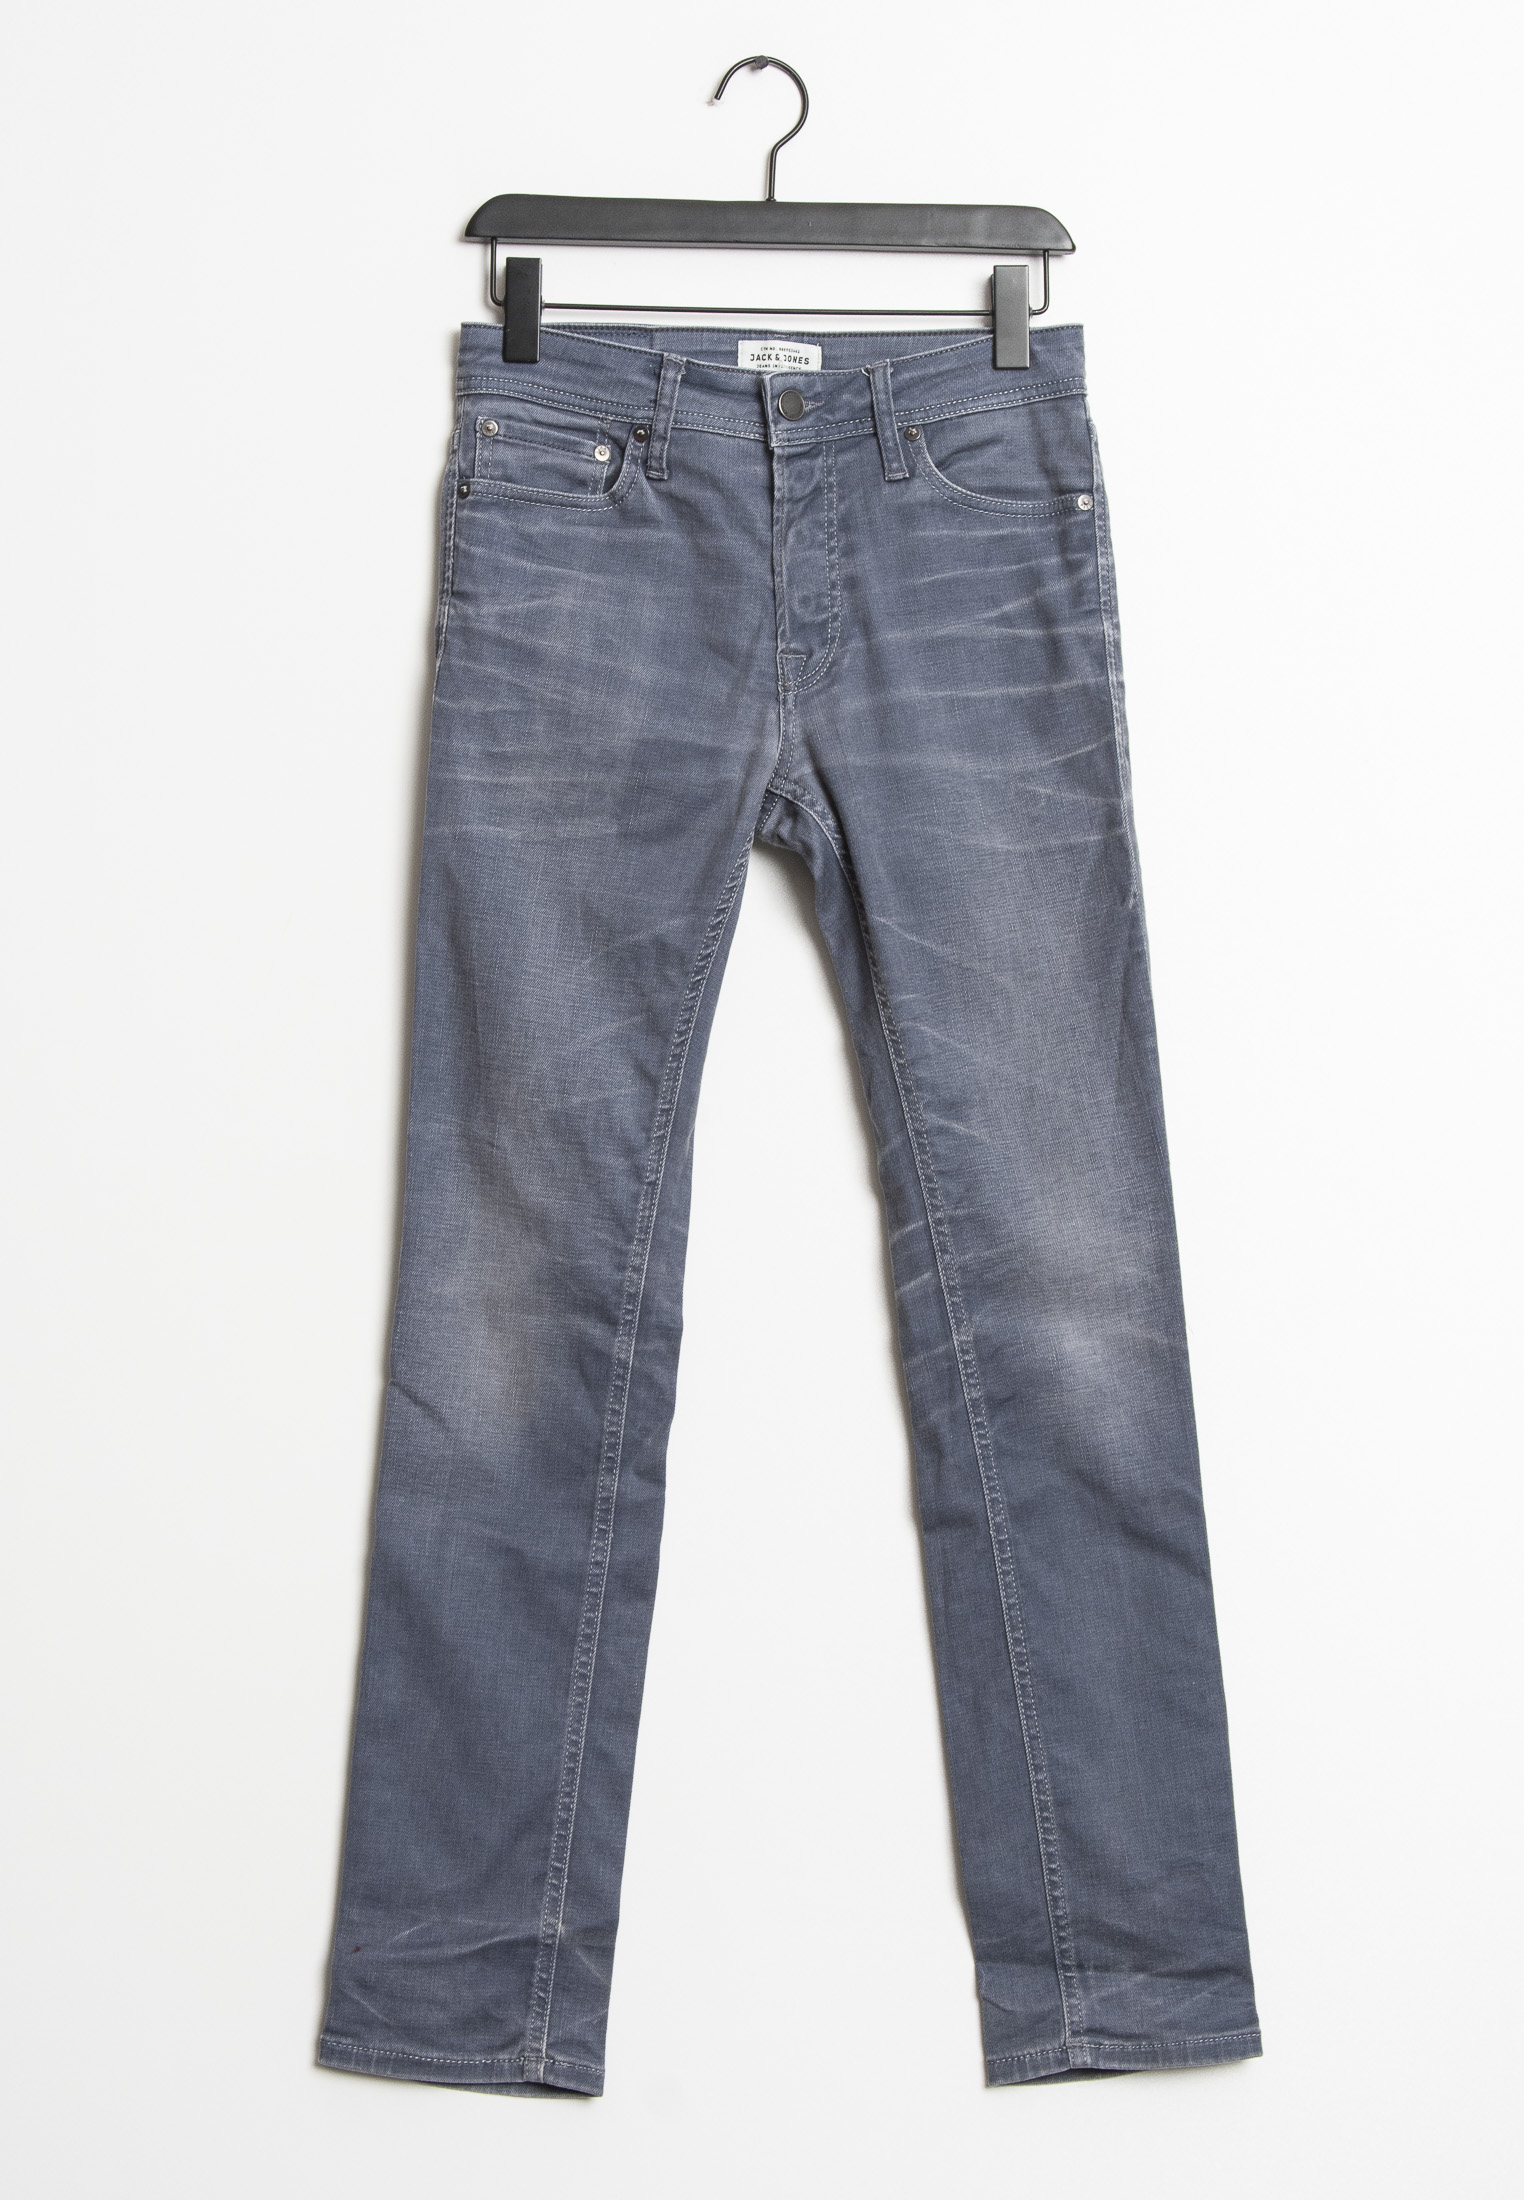 Royal Denim Division by Jack & Jones jeans, grå, W27 L32